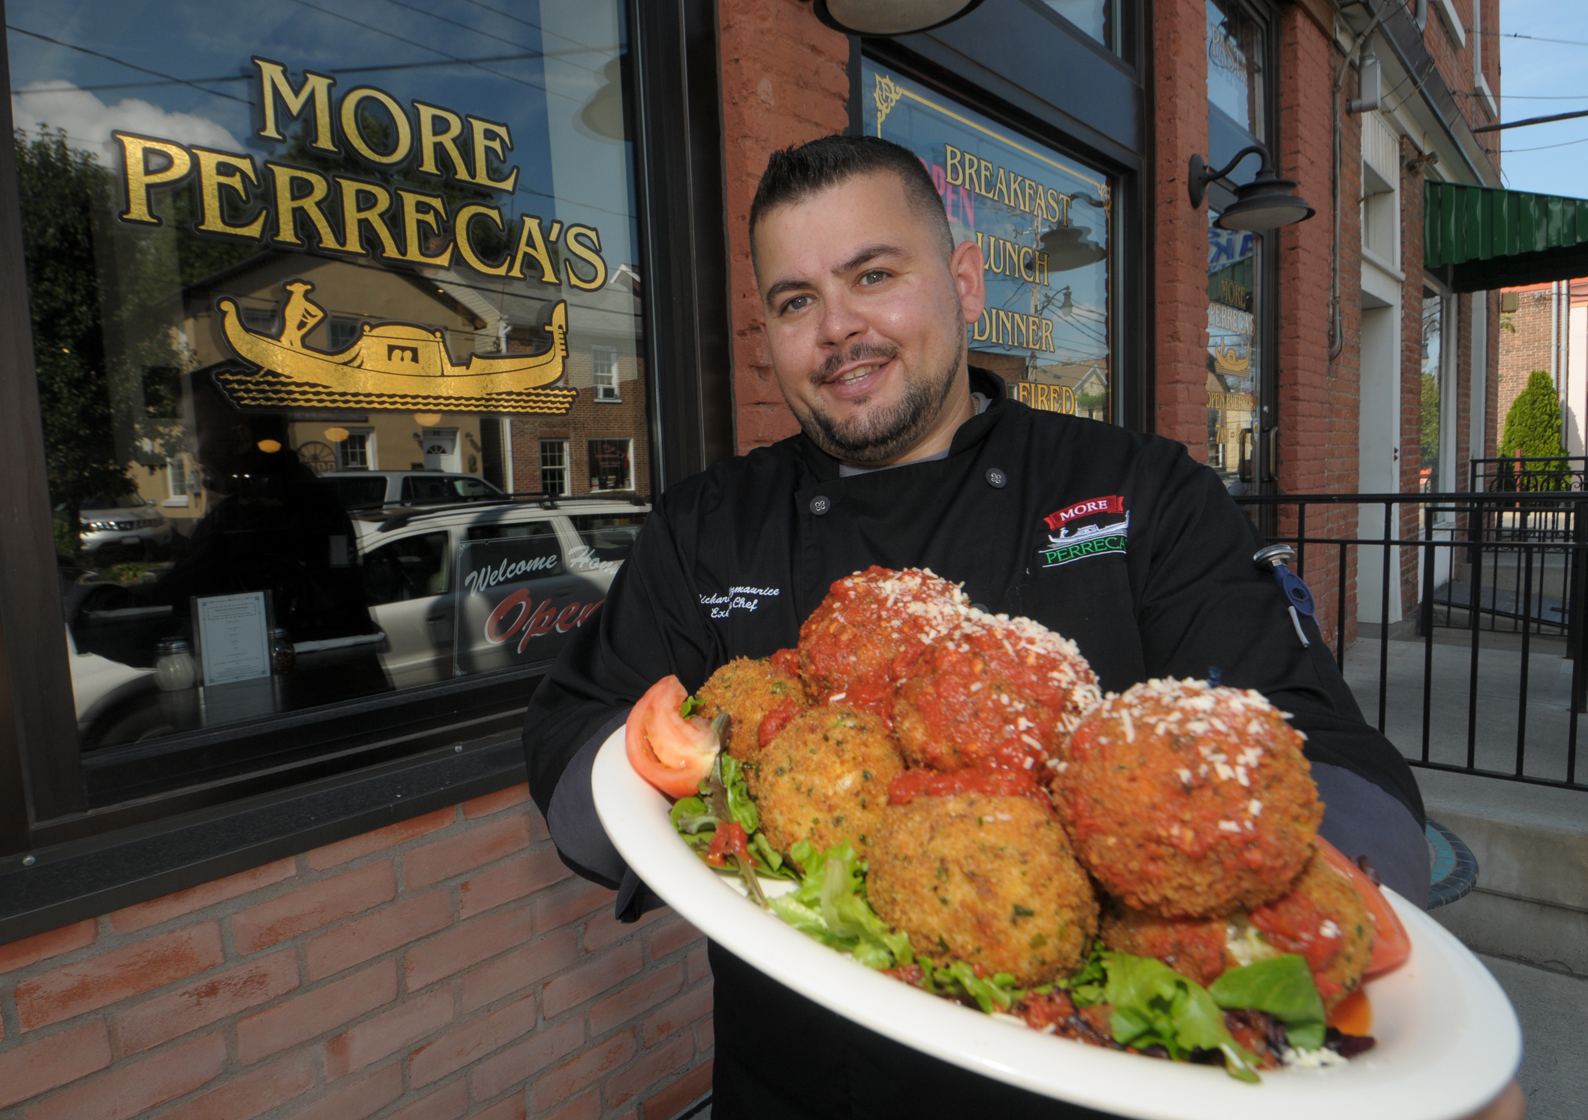 Let S Eat Food Festivals To Highlight Greek Italian Specialties The Daily Gazette